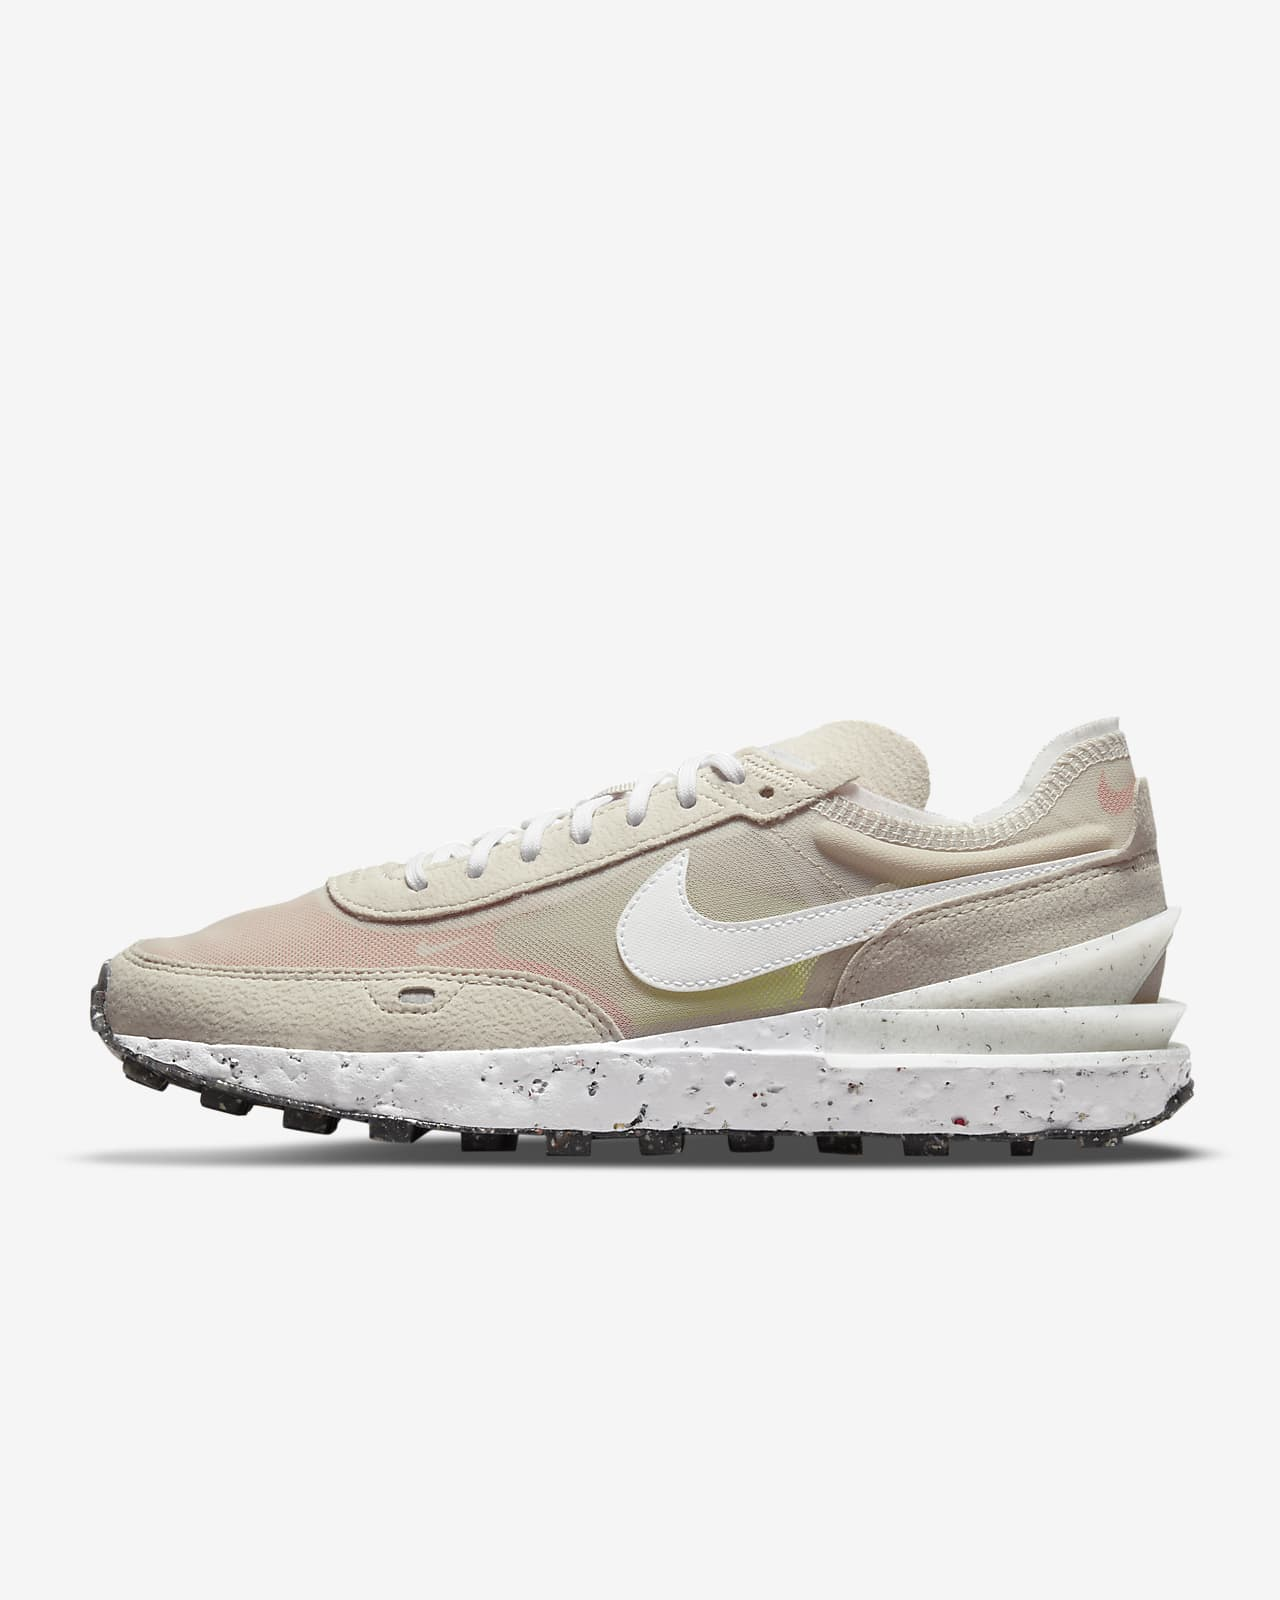 Chaussure Nike Waffle One Crater SE pour Femme